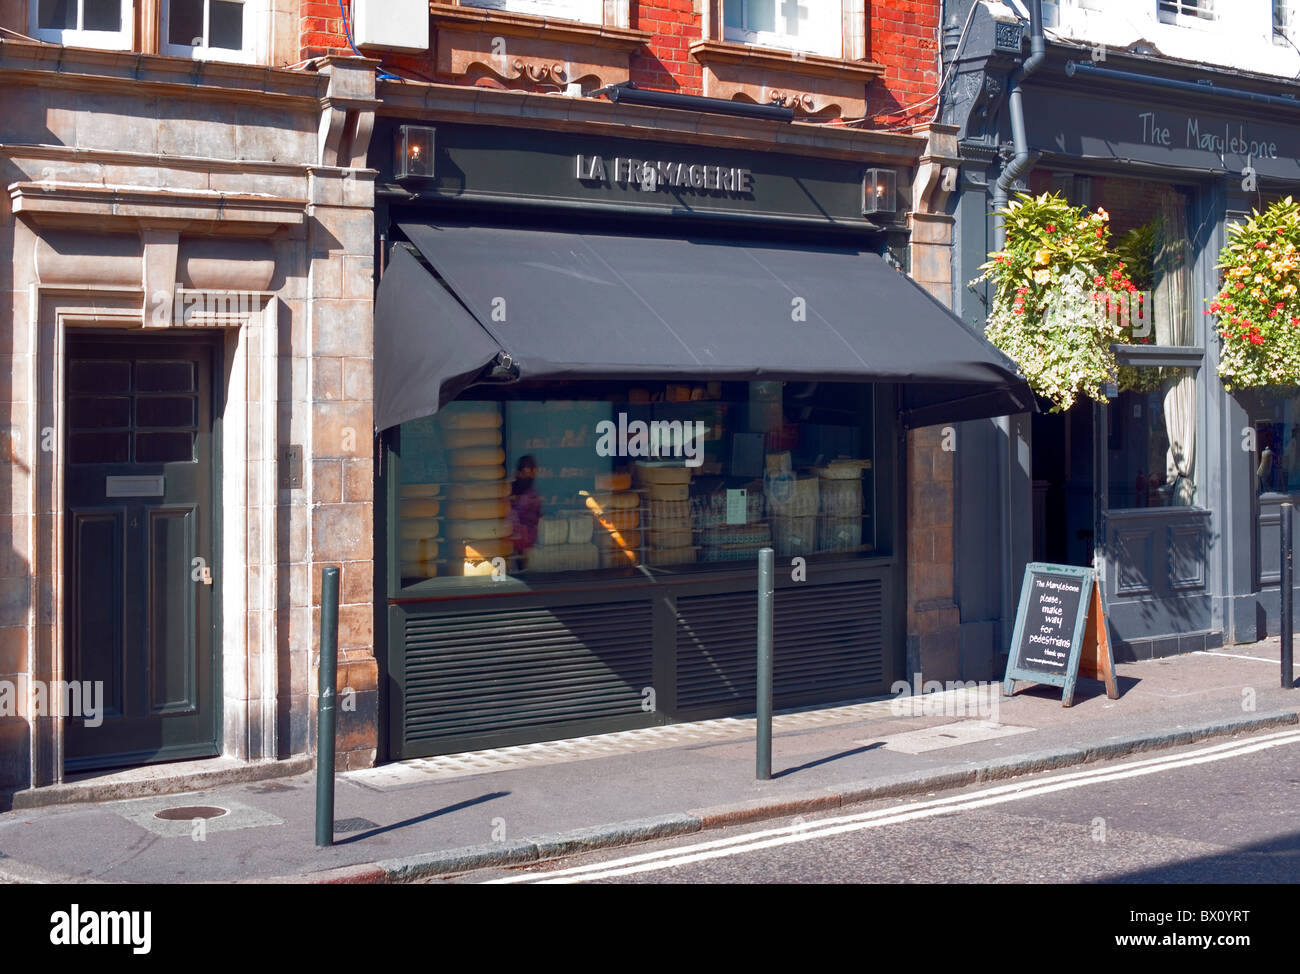 La Fromagerie, Moxon Street, London, England, UK, Europe - Stock Image